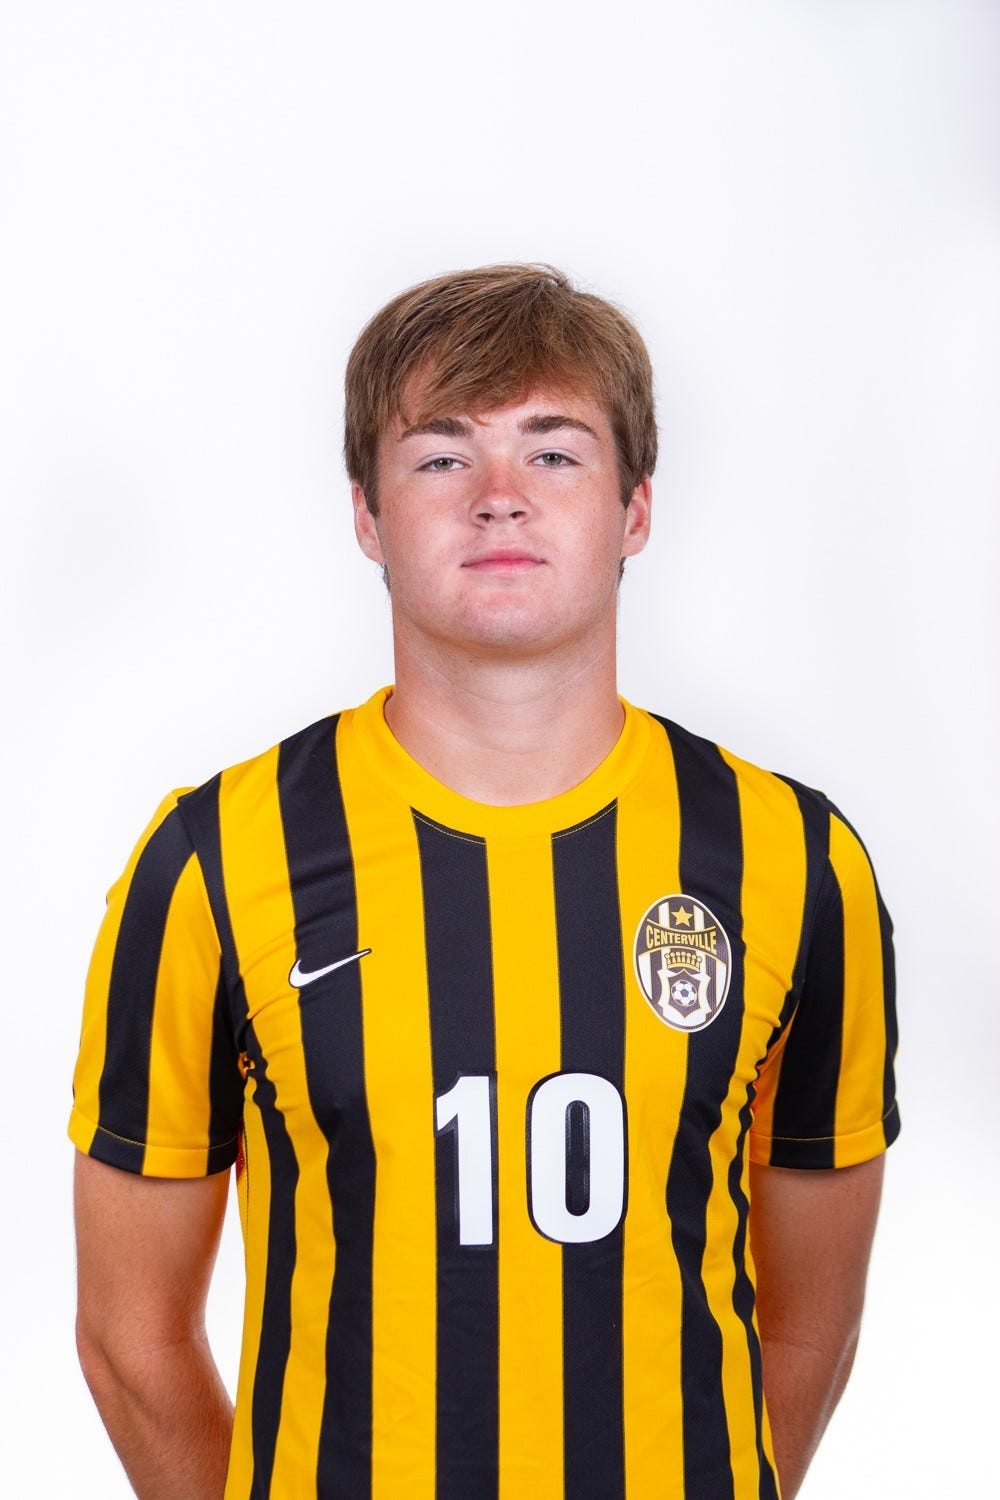 Centerville's Drew Boettcher was second-team All-Ohio in 2020 after leading the GWOC in goals with 19 and helping lead the Elks to a district title.